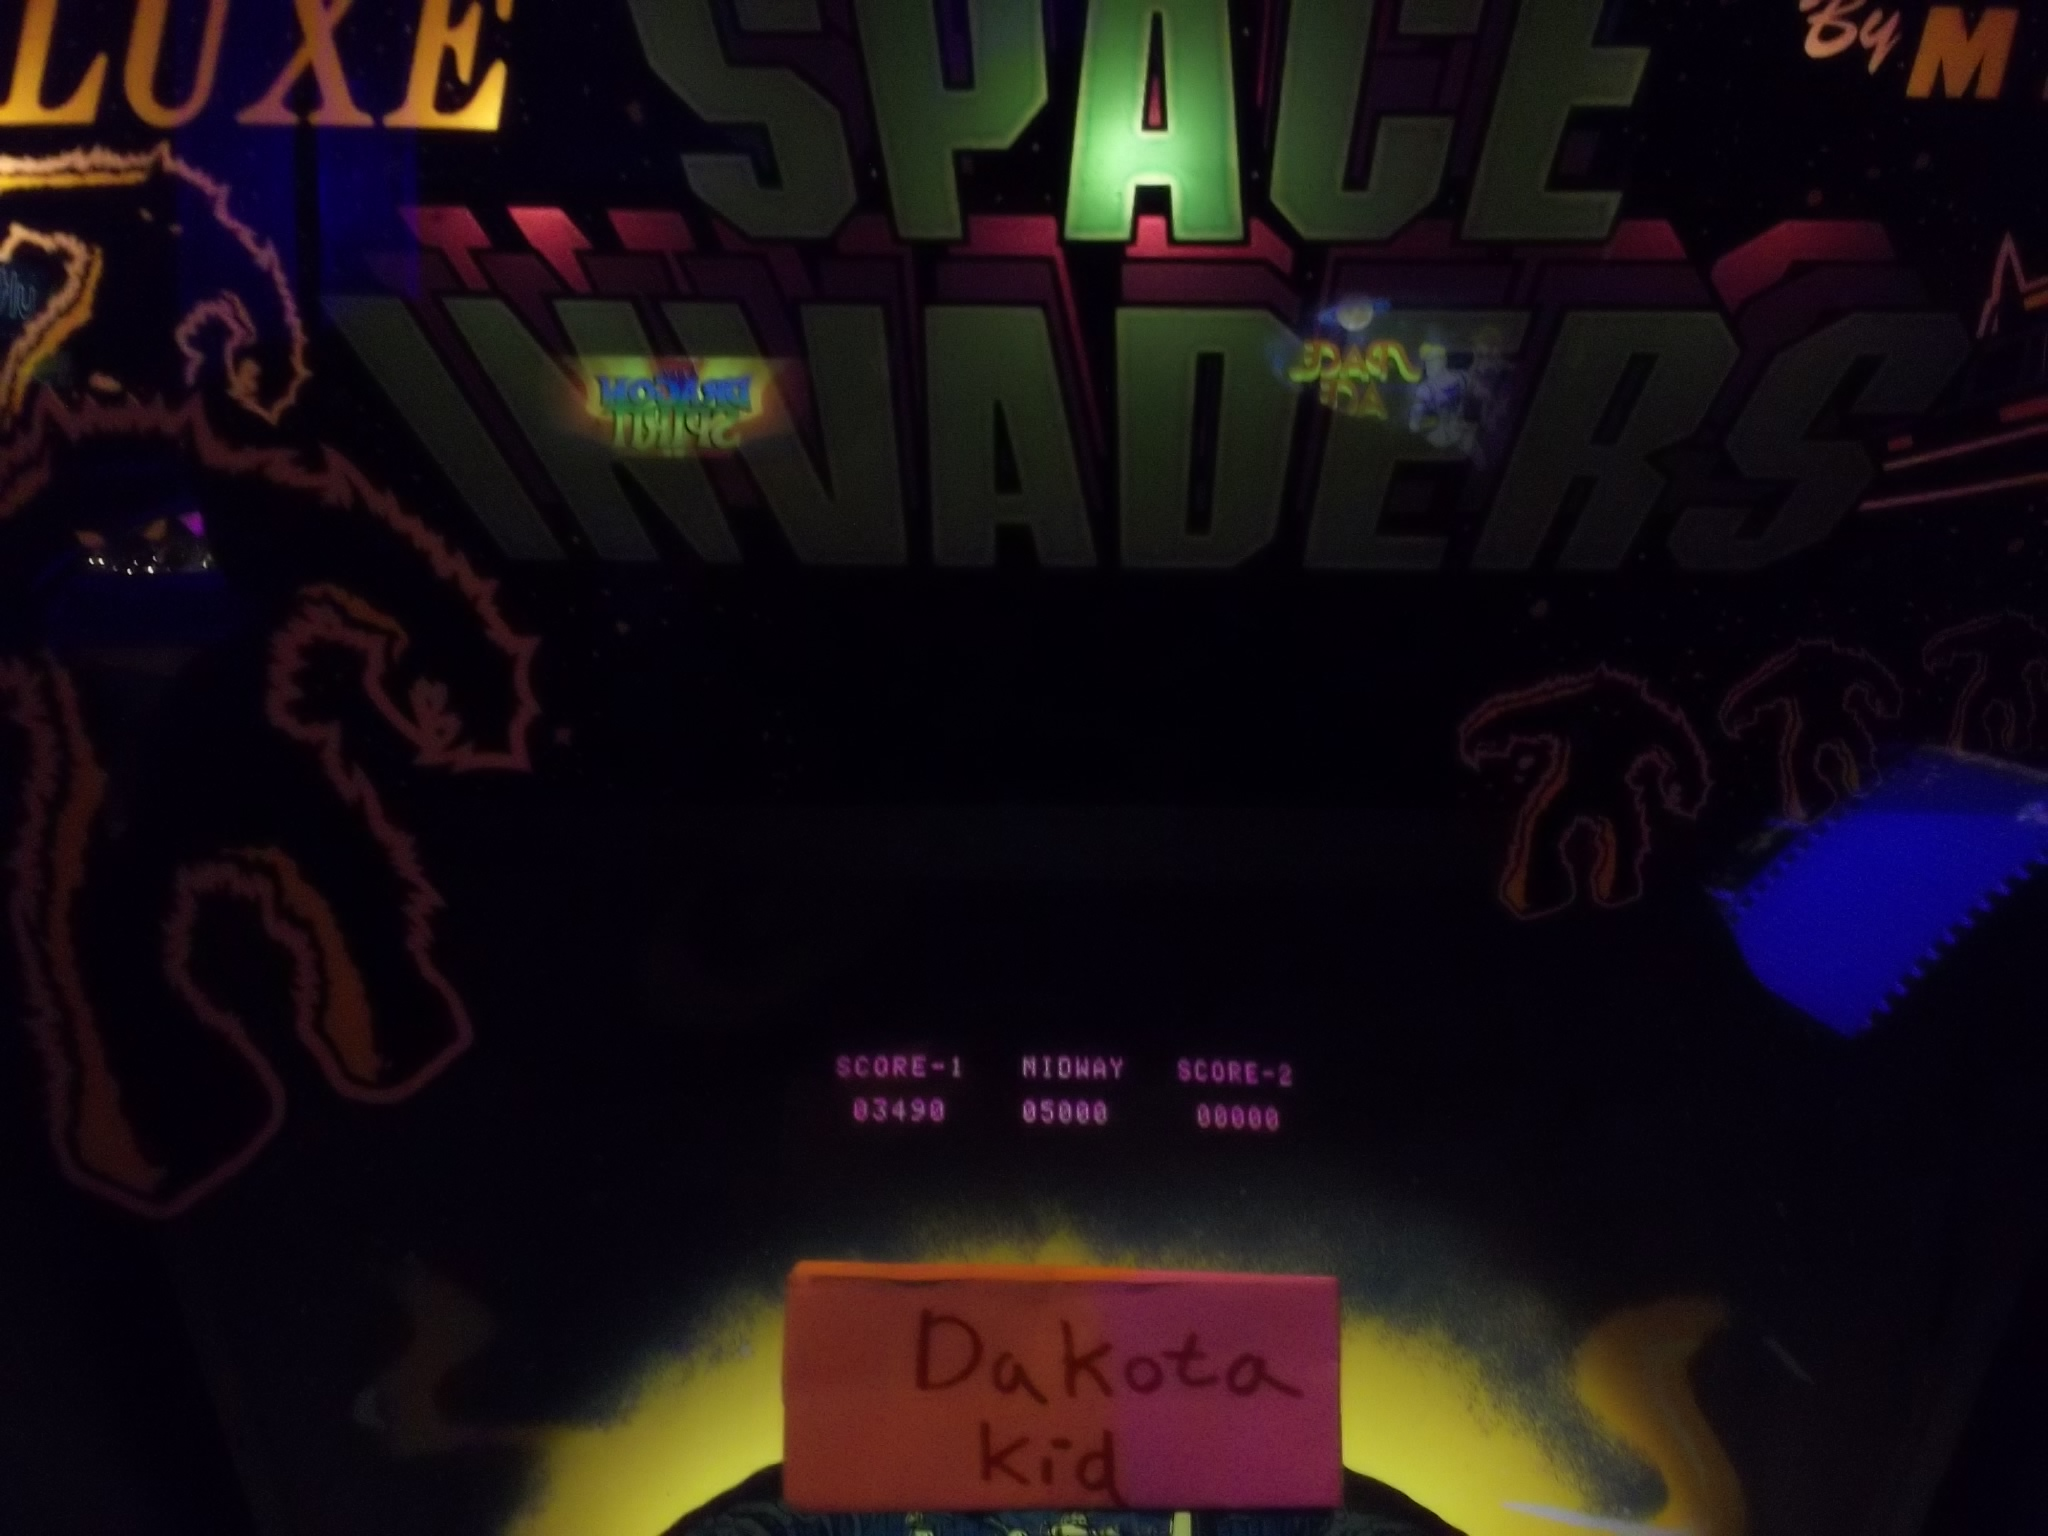 DakotaKid: Space Invaders Deluxe (Arcade) 3,490 points on 2017-01-19 15:26:22